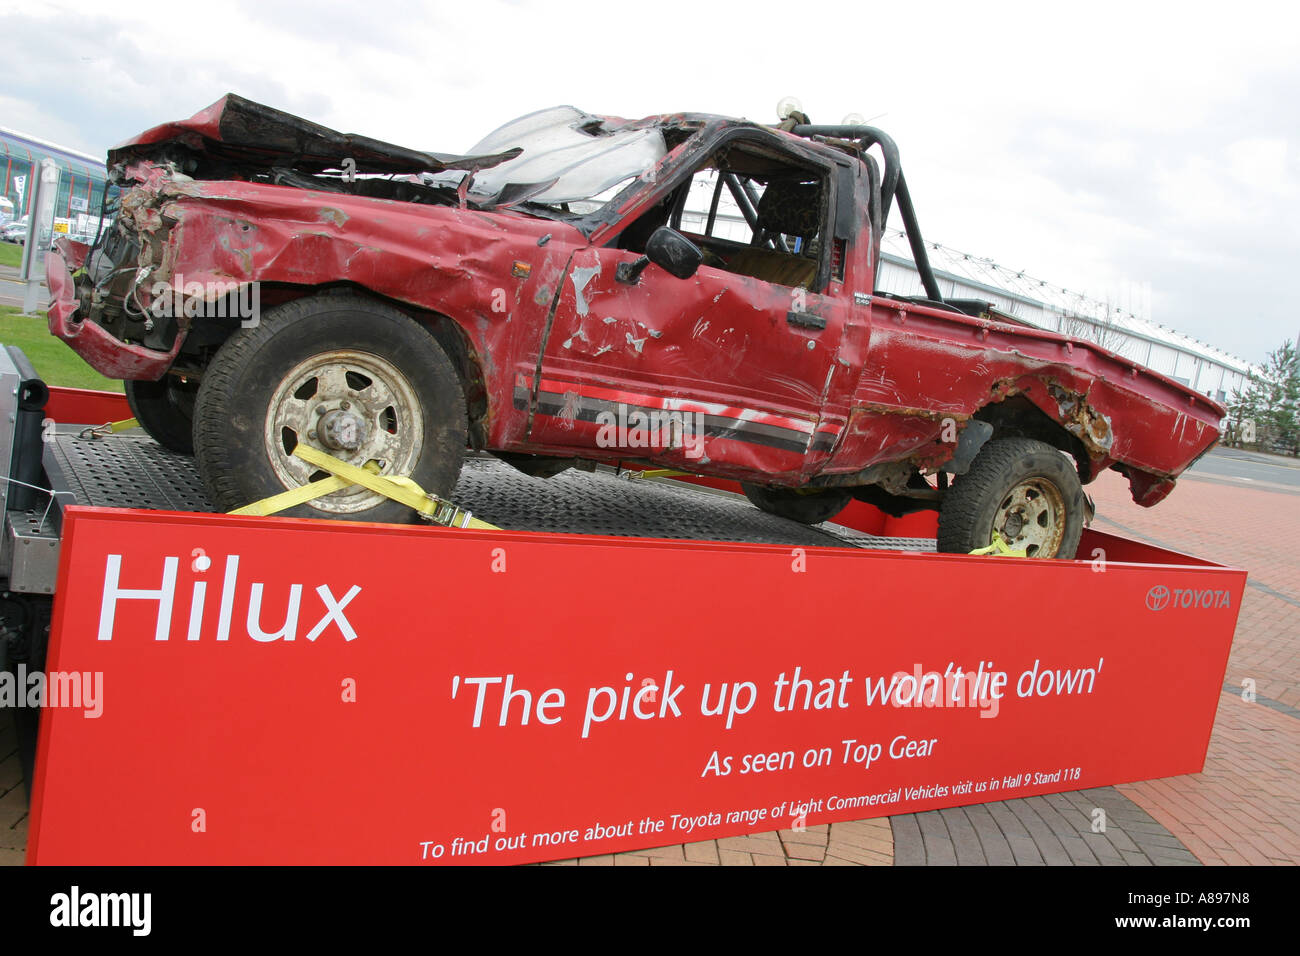 Toyota Hilux as demolished on the BBC television program 'Top Gear'. UK. Shown at the NEC Commercial Vehicle Show. - Stock Image